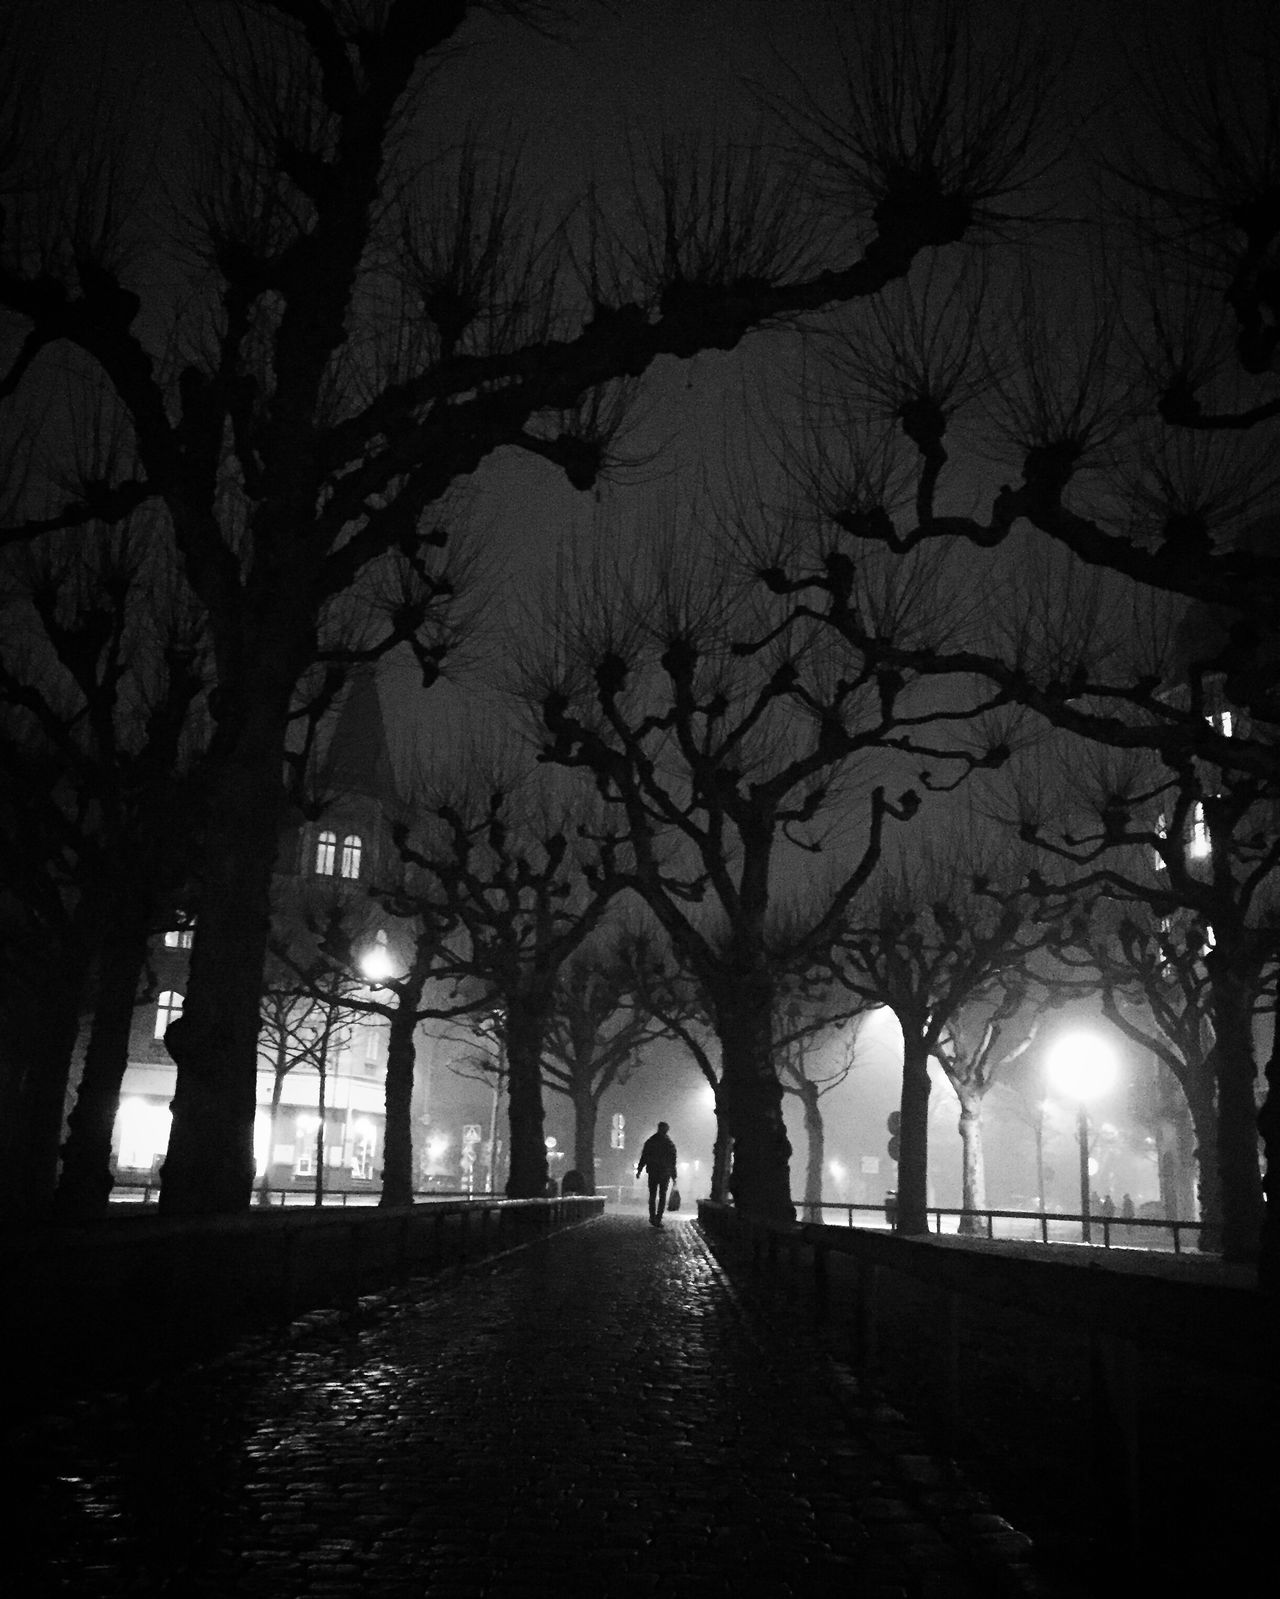 Tree Silhouette Winter Illuminated Darkness And Light EyeEm Best Shots - Black + White Monochrome Bw_collection Black And White Street Photography Shootermag